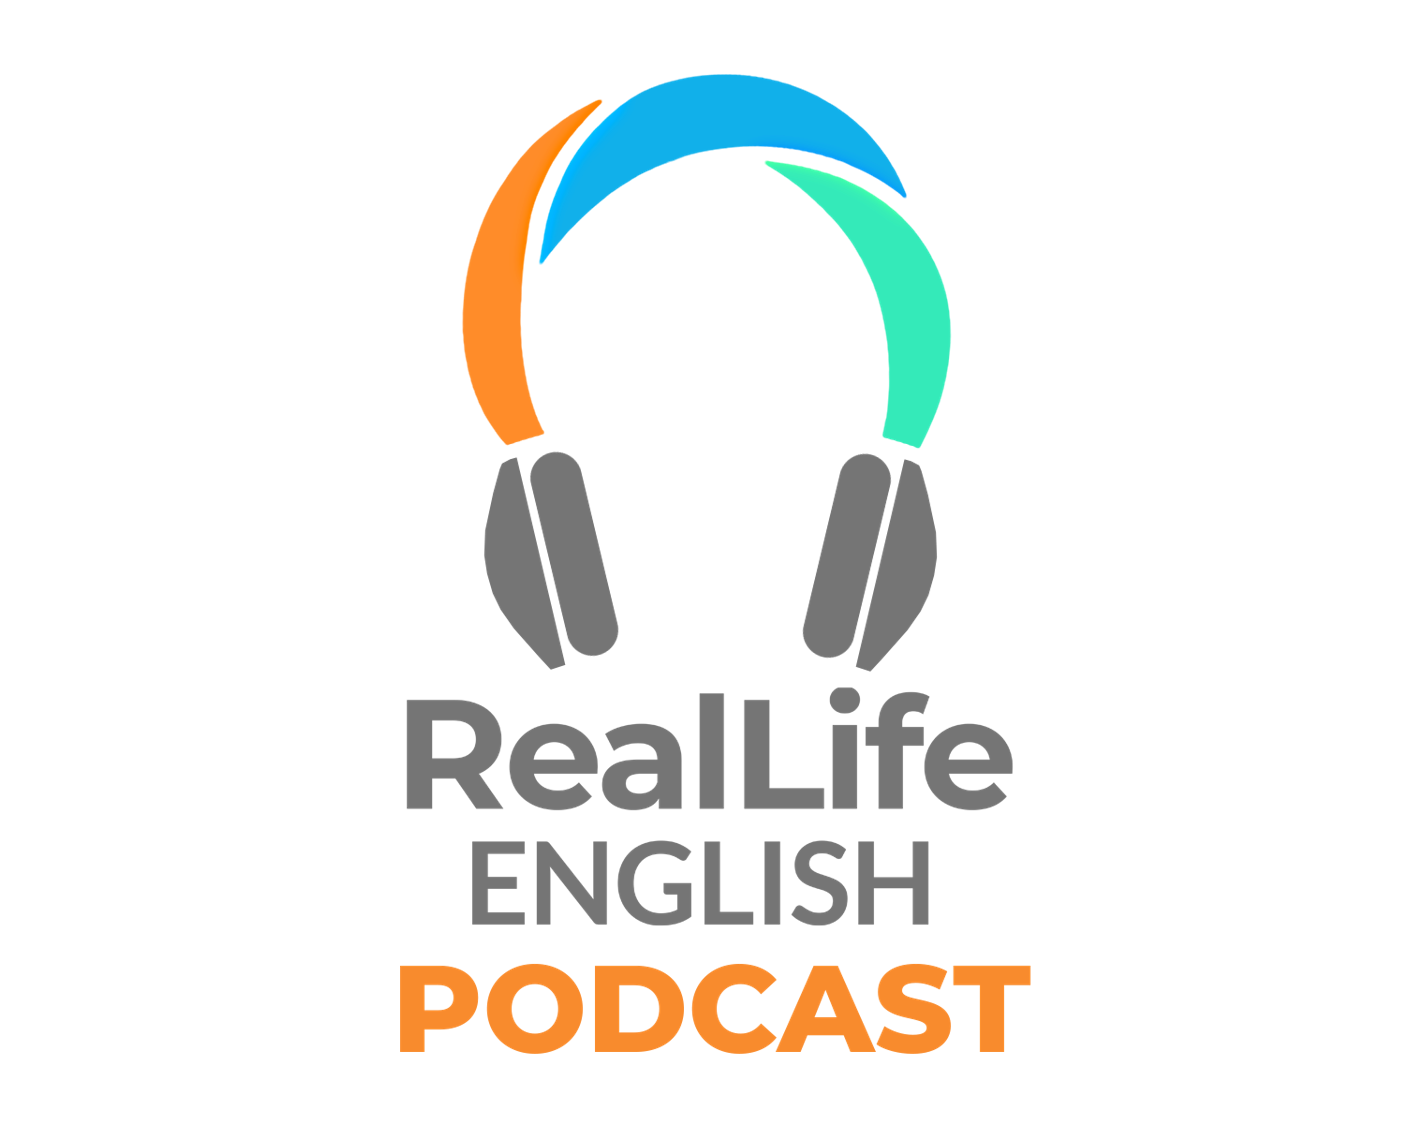 #242 - No Time to Learn English? Use These Tips to Make it a Daily Habit!